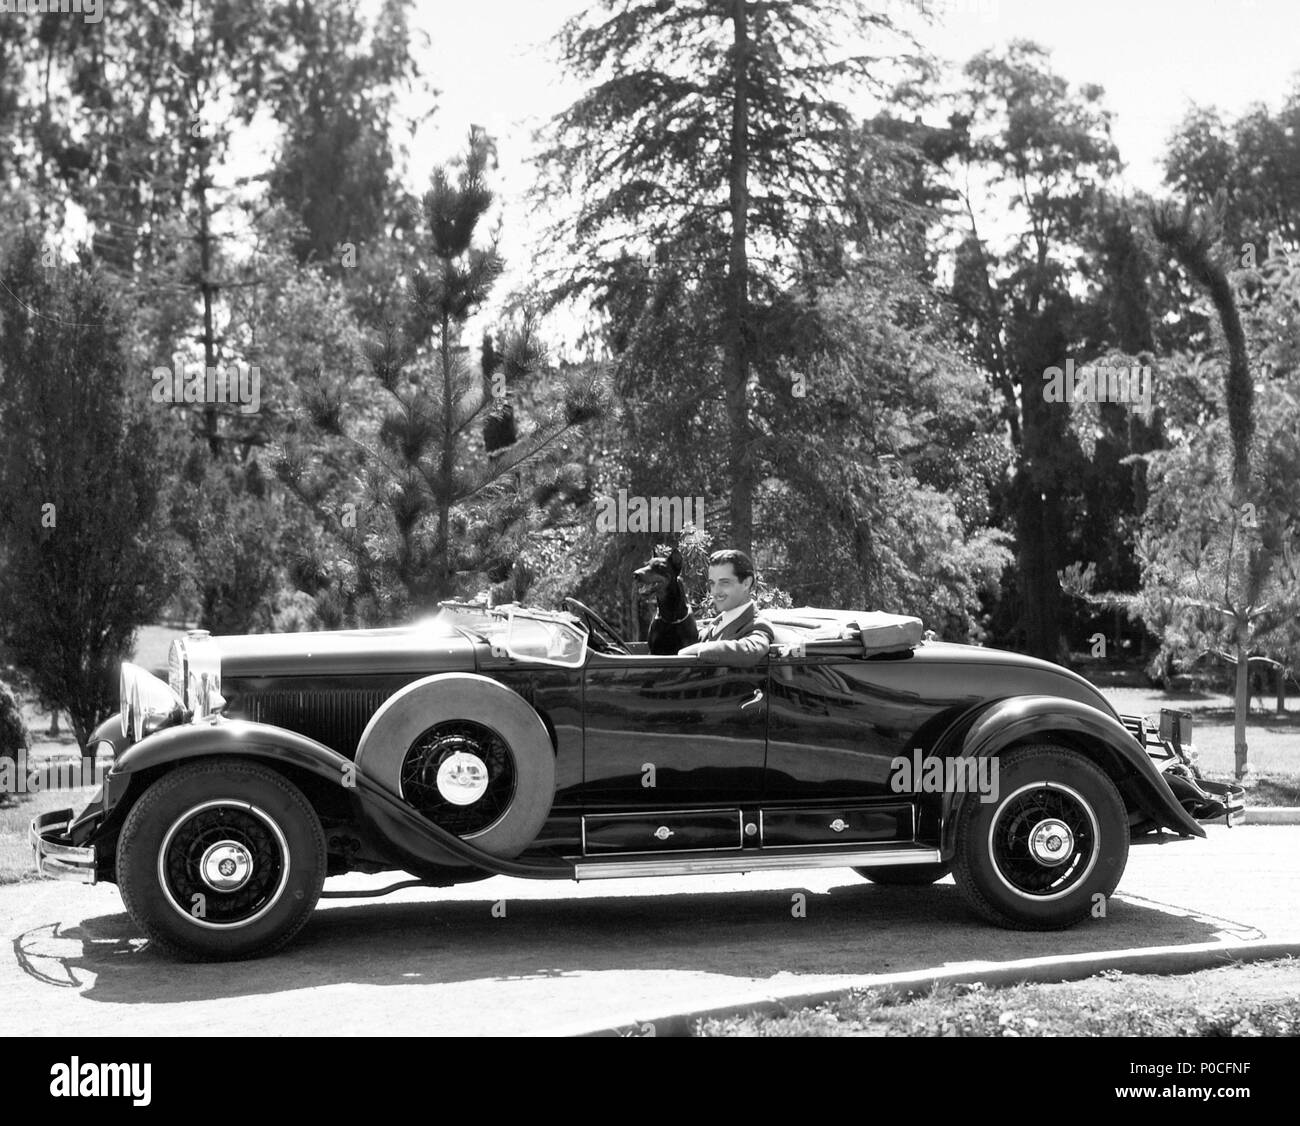 Stars: RAMON NOVARRO Stock Photo: 206800203 - Alamy